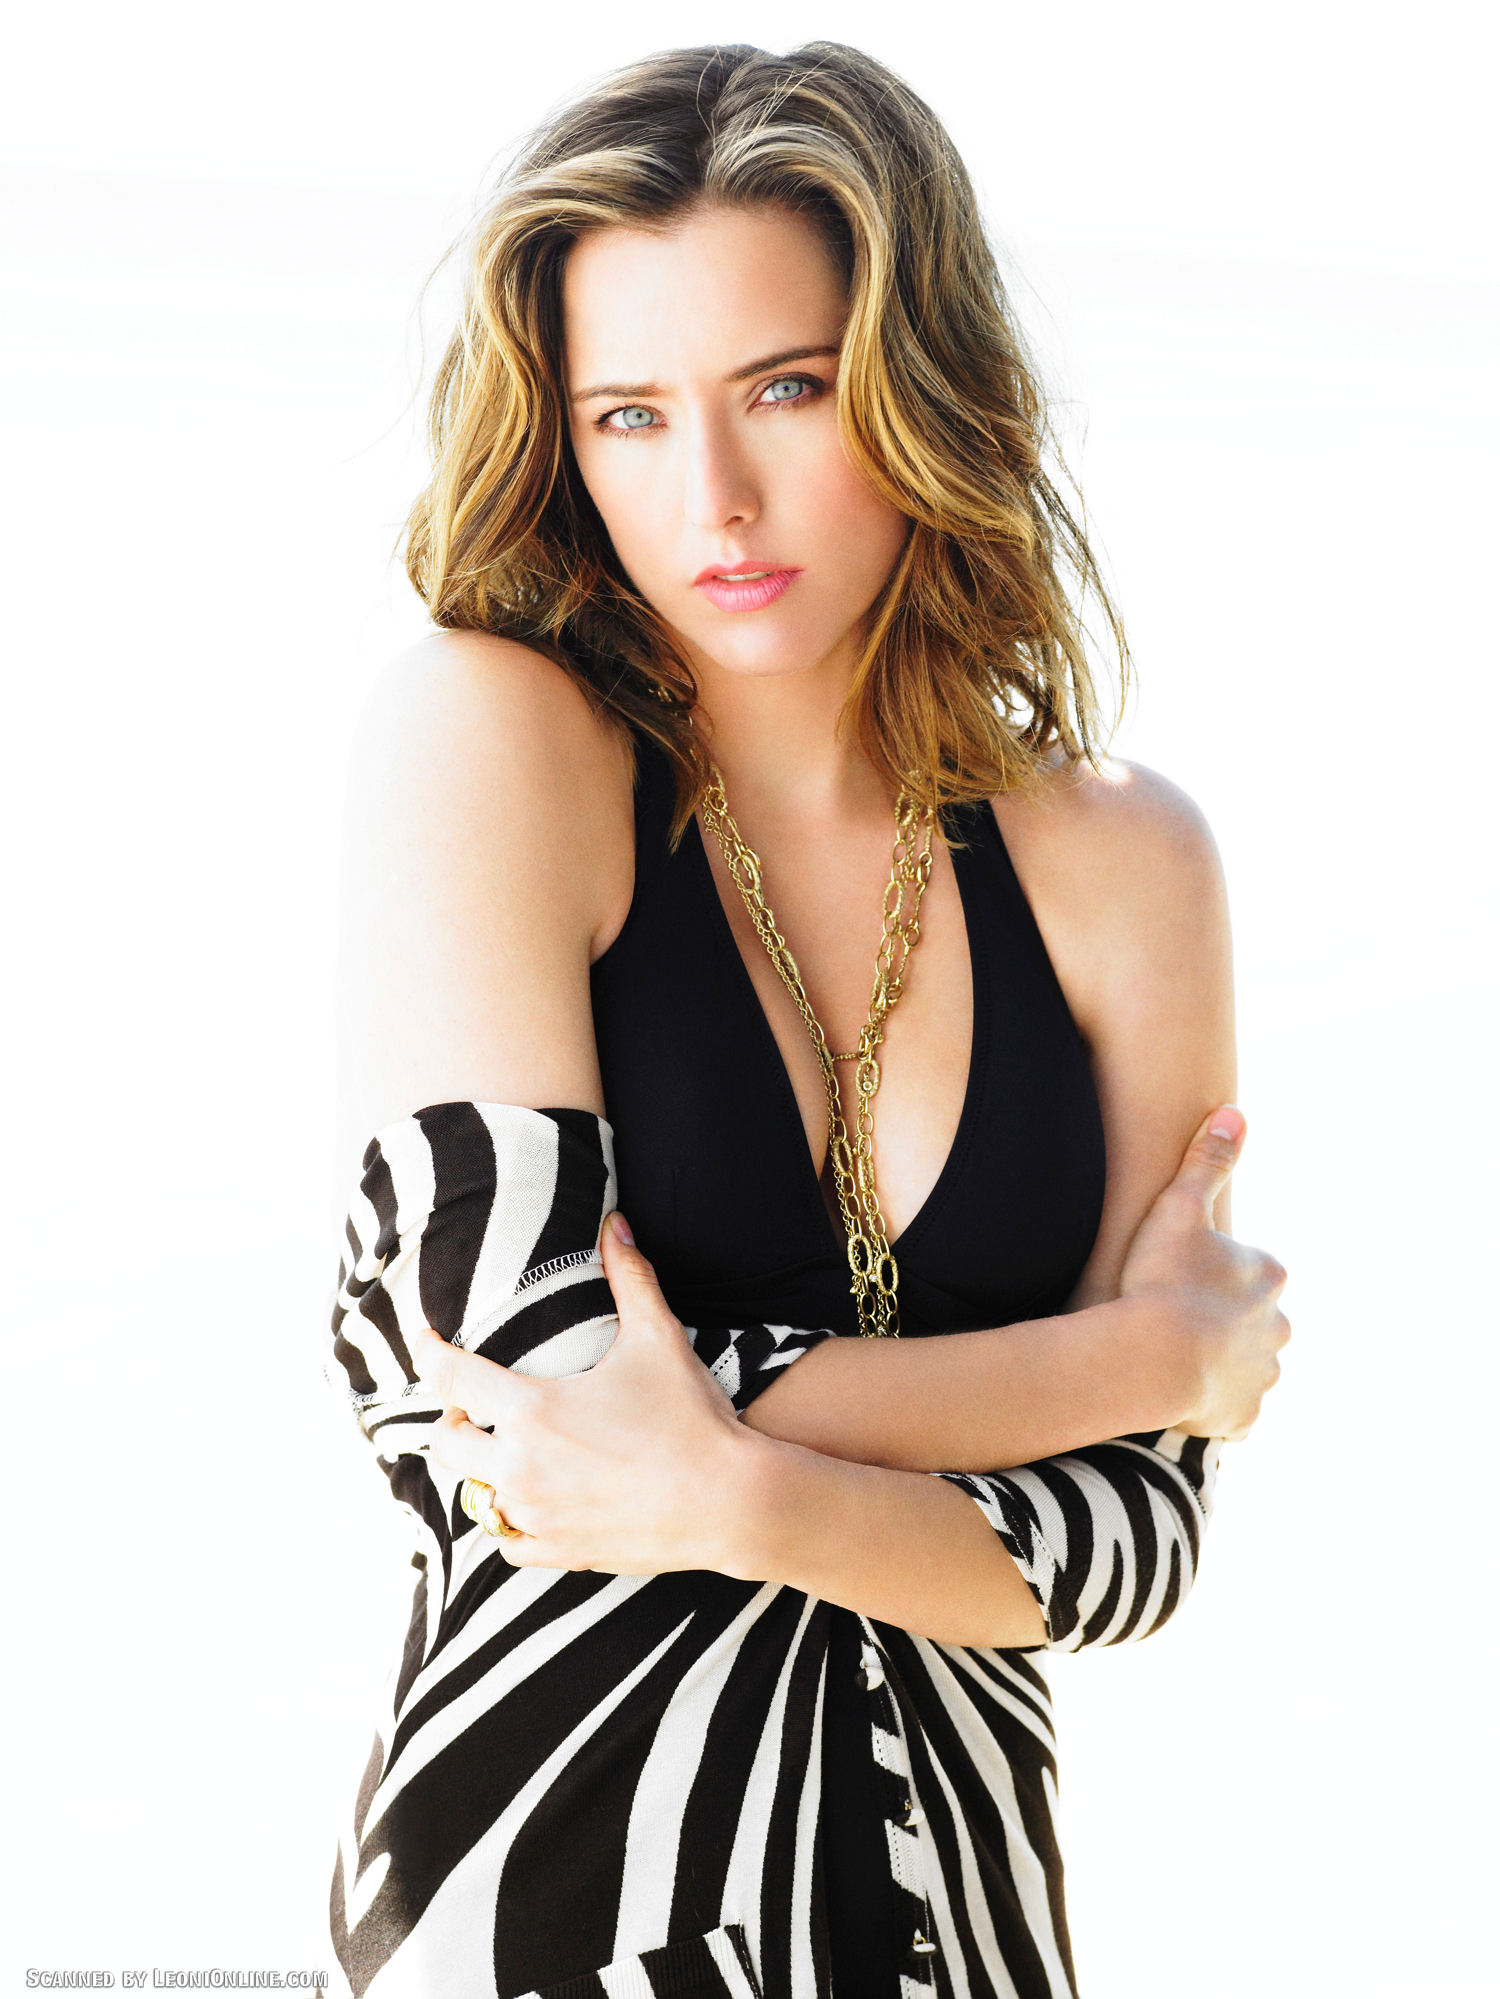 Tea Leoni - Photos Hot